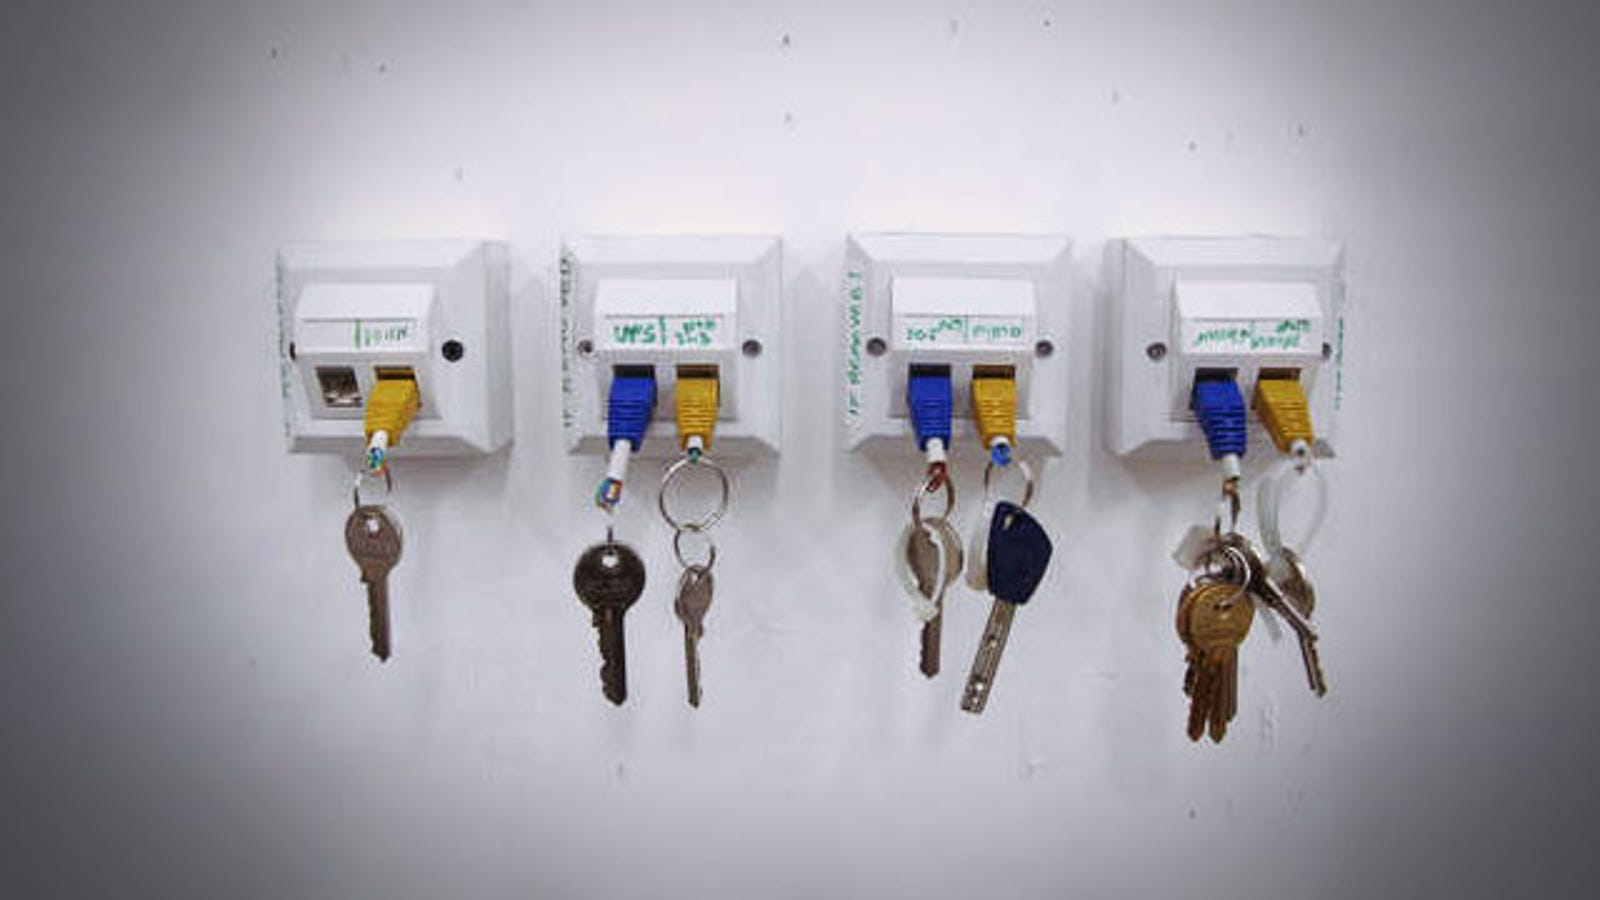 plug your keys into the wall with a homemade ethernet keychain and